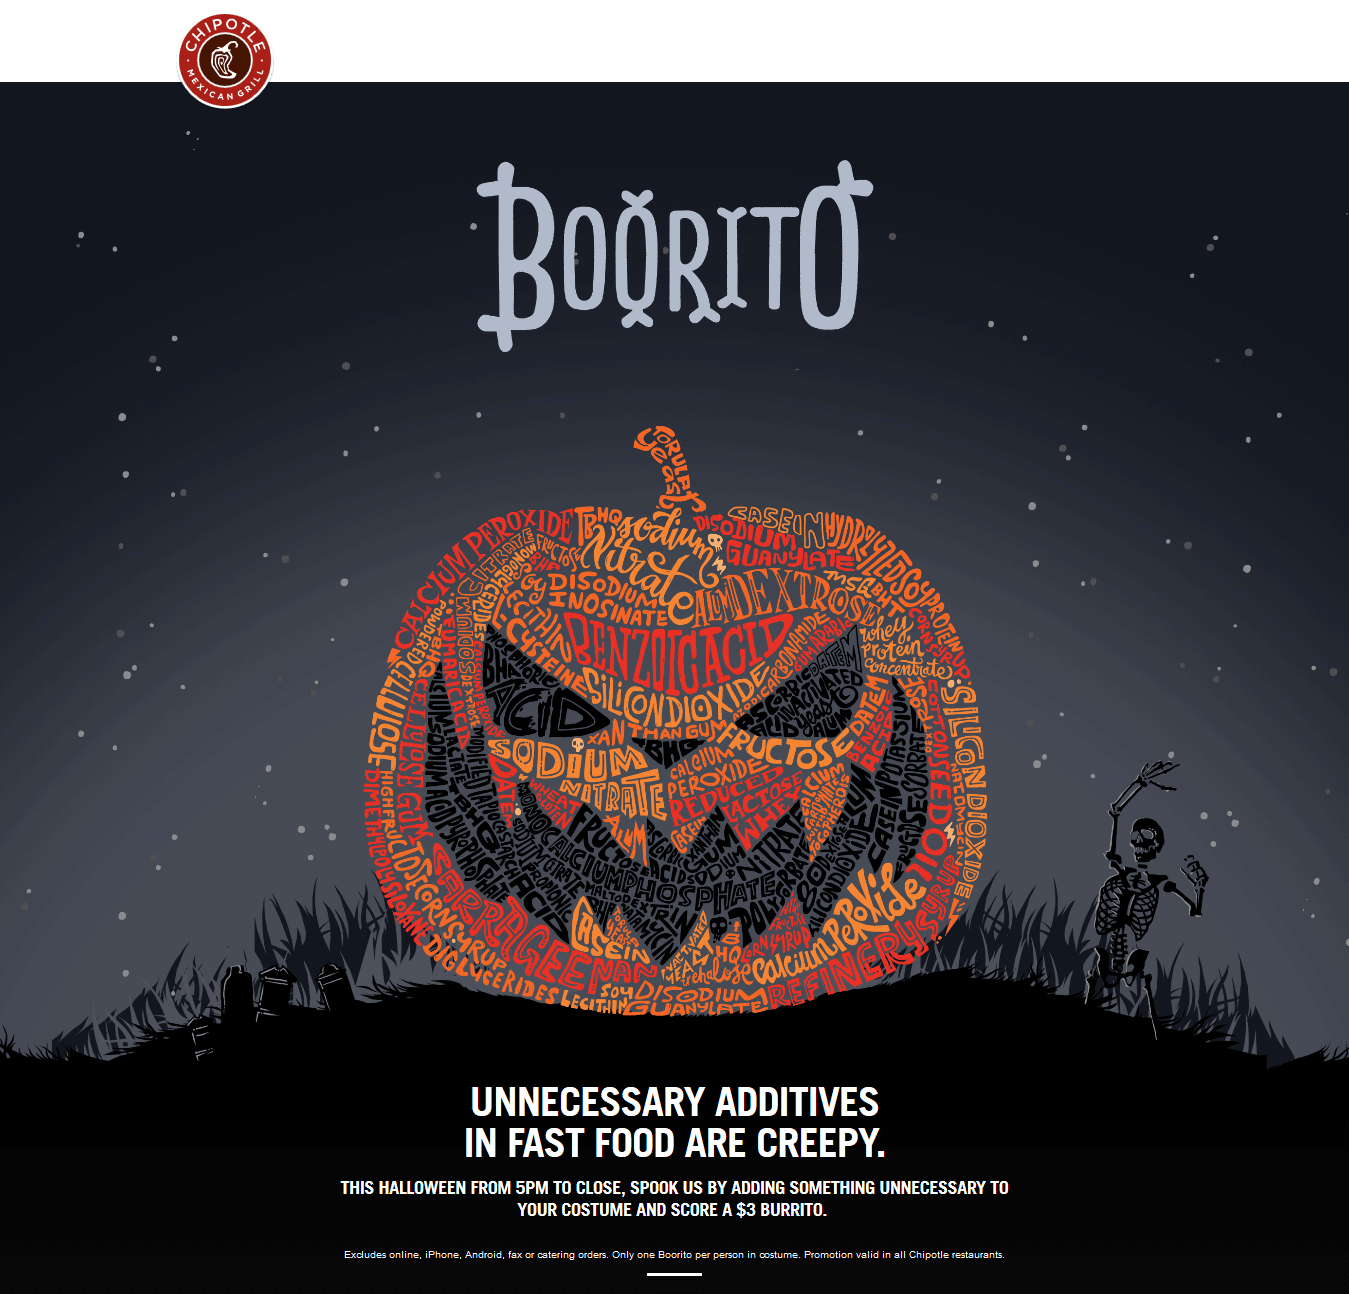 Chipotle Coupon March 2017 $3 burritos in costume Halloween at Chipotle